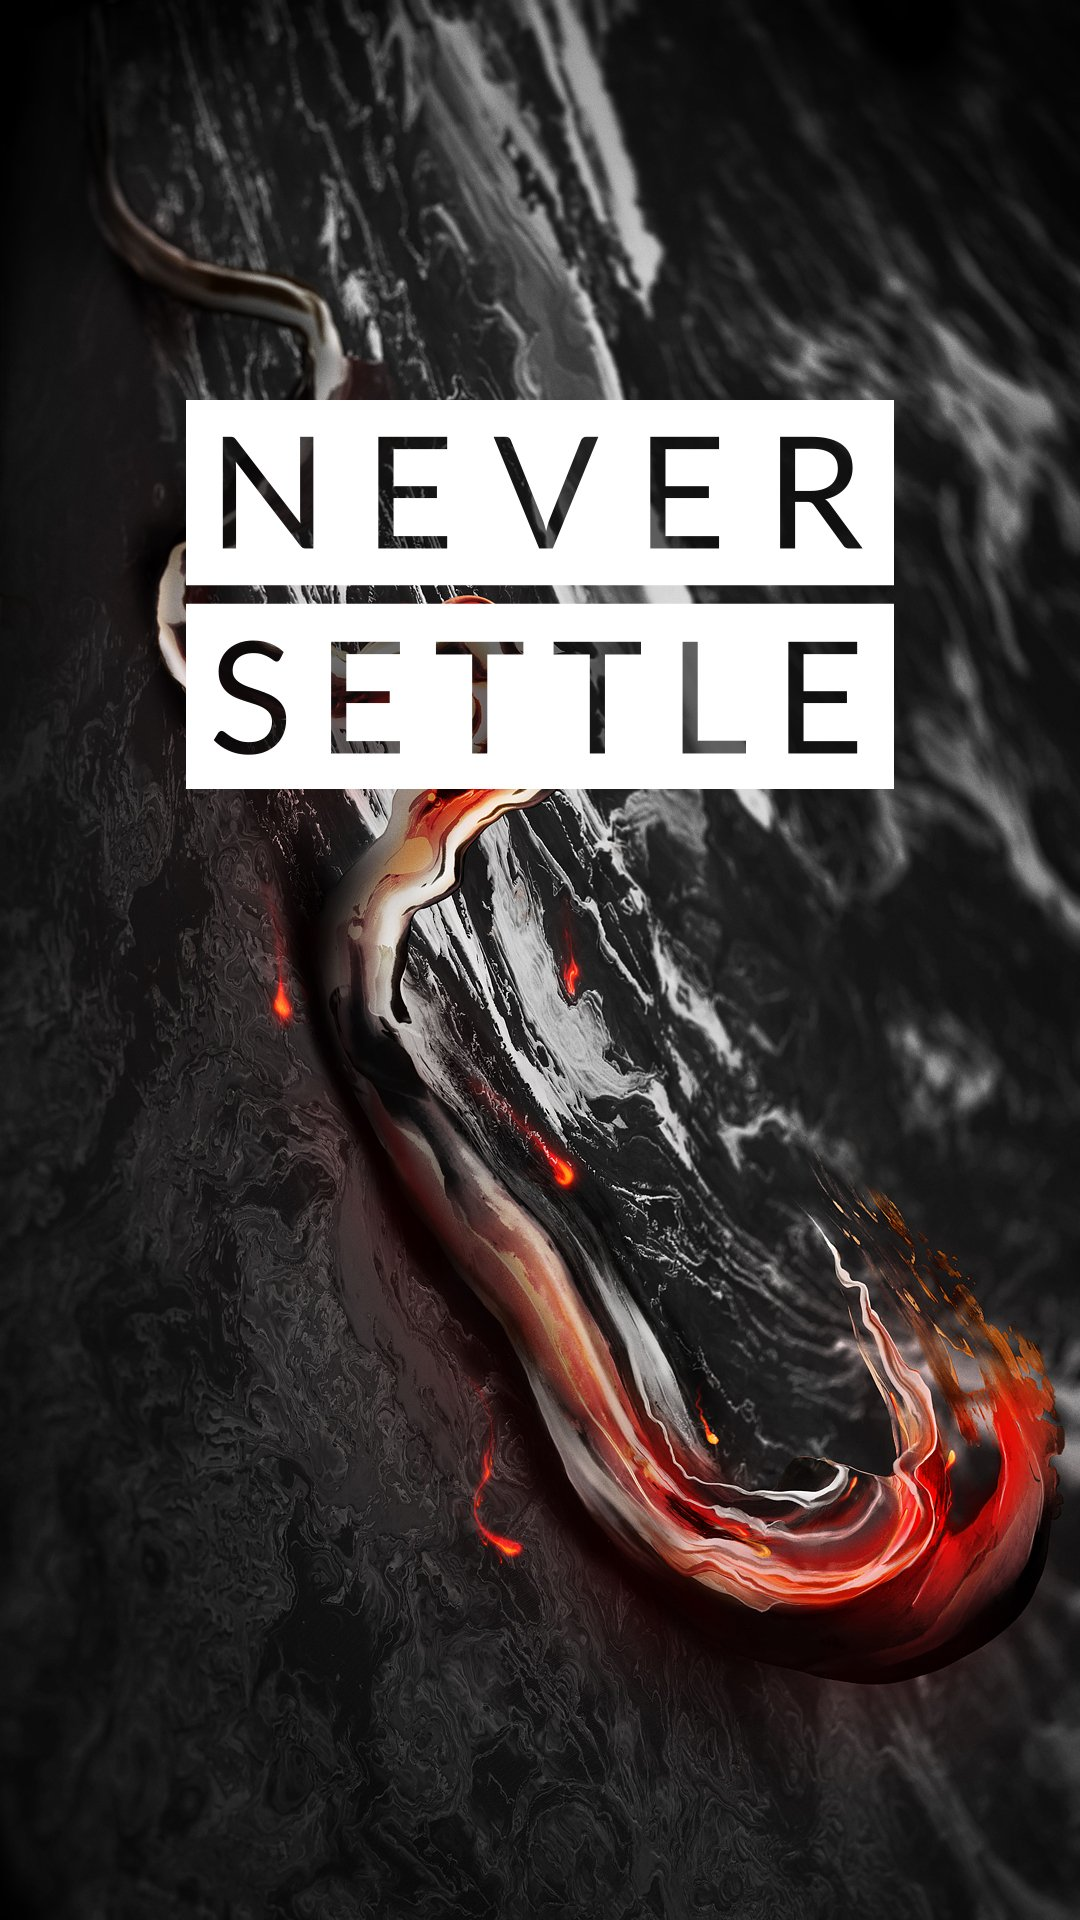 Download-OnePlus-themed-wallpaper-wpc9004439